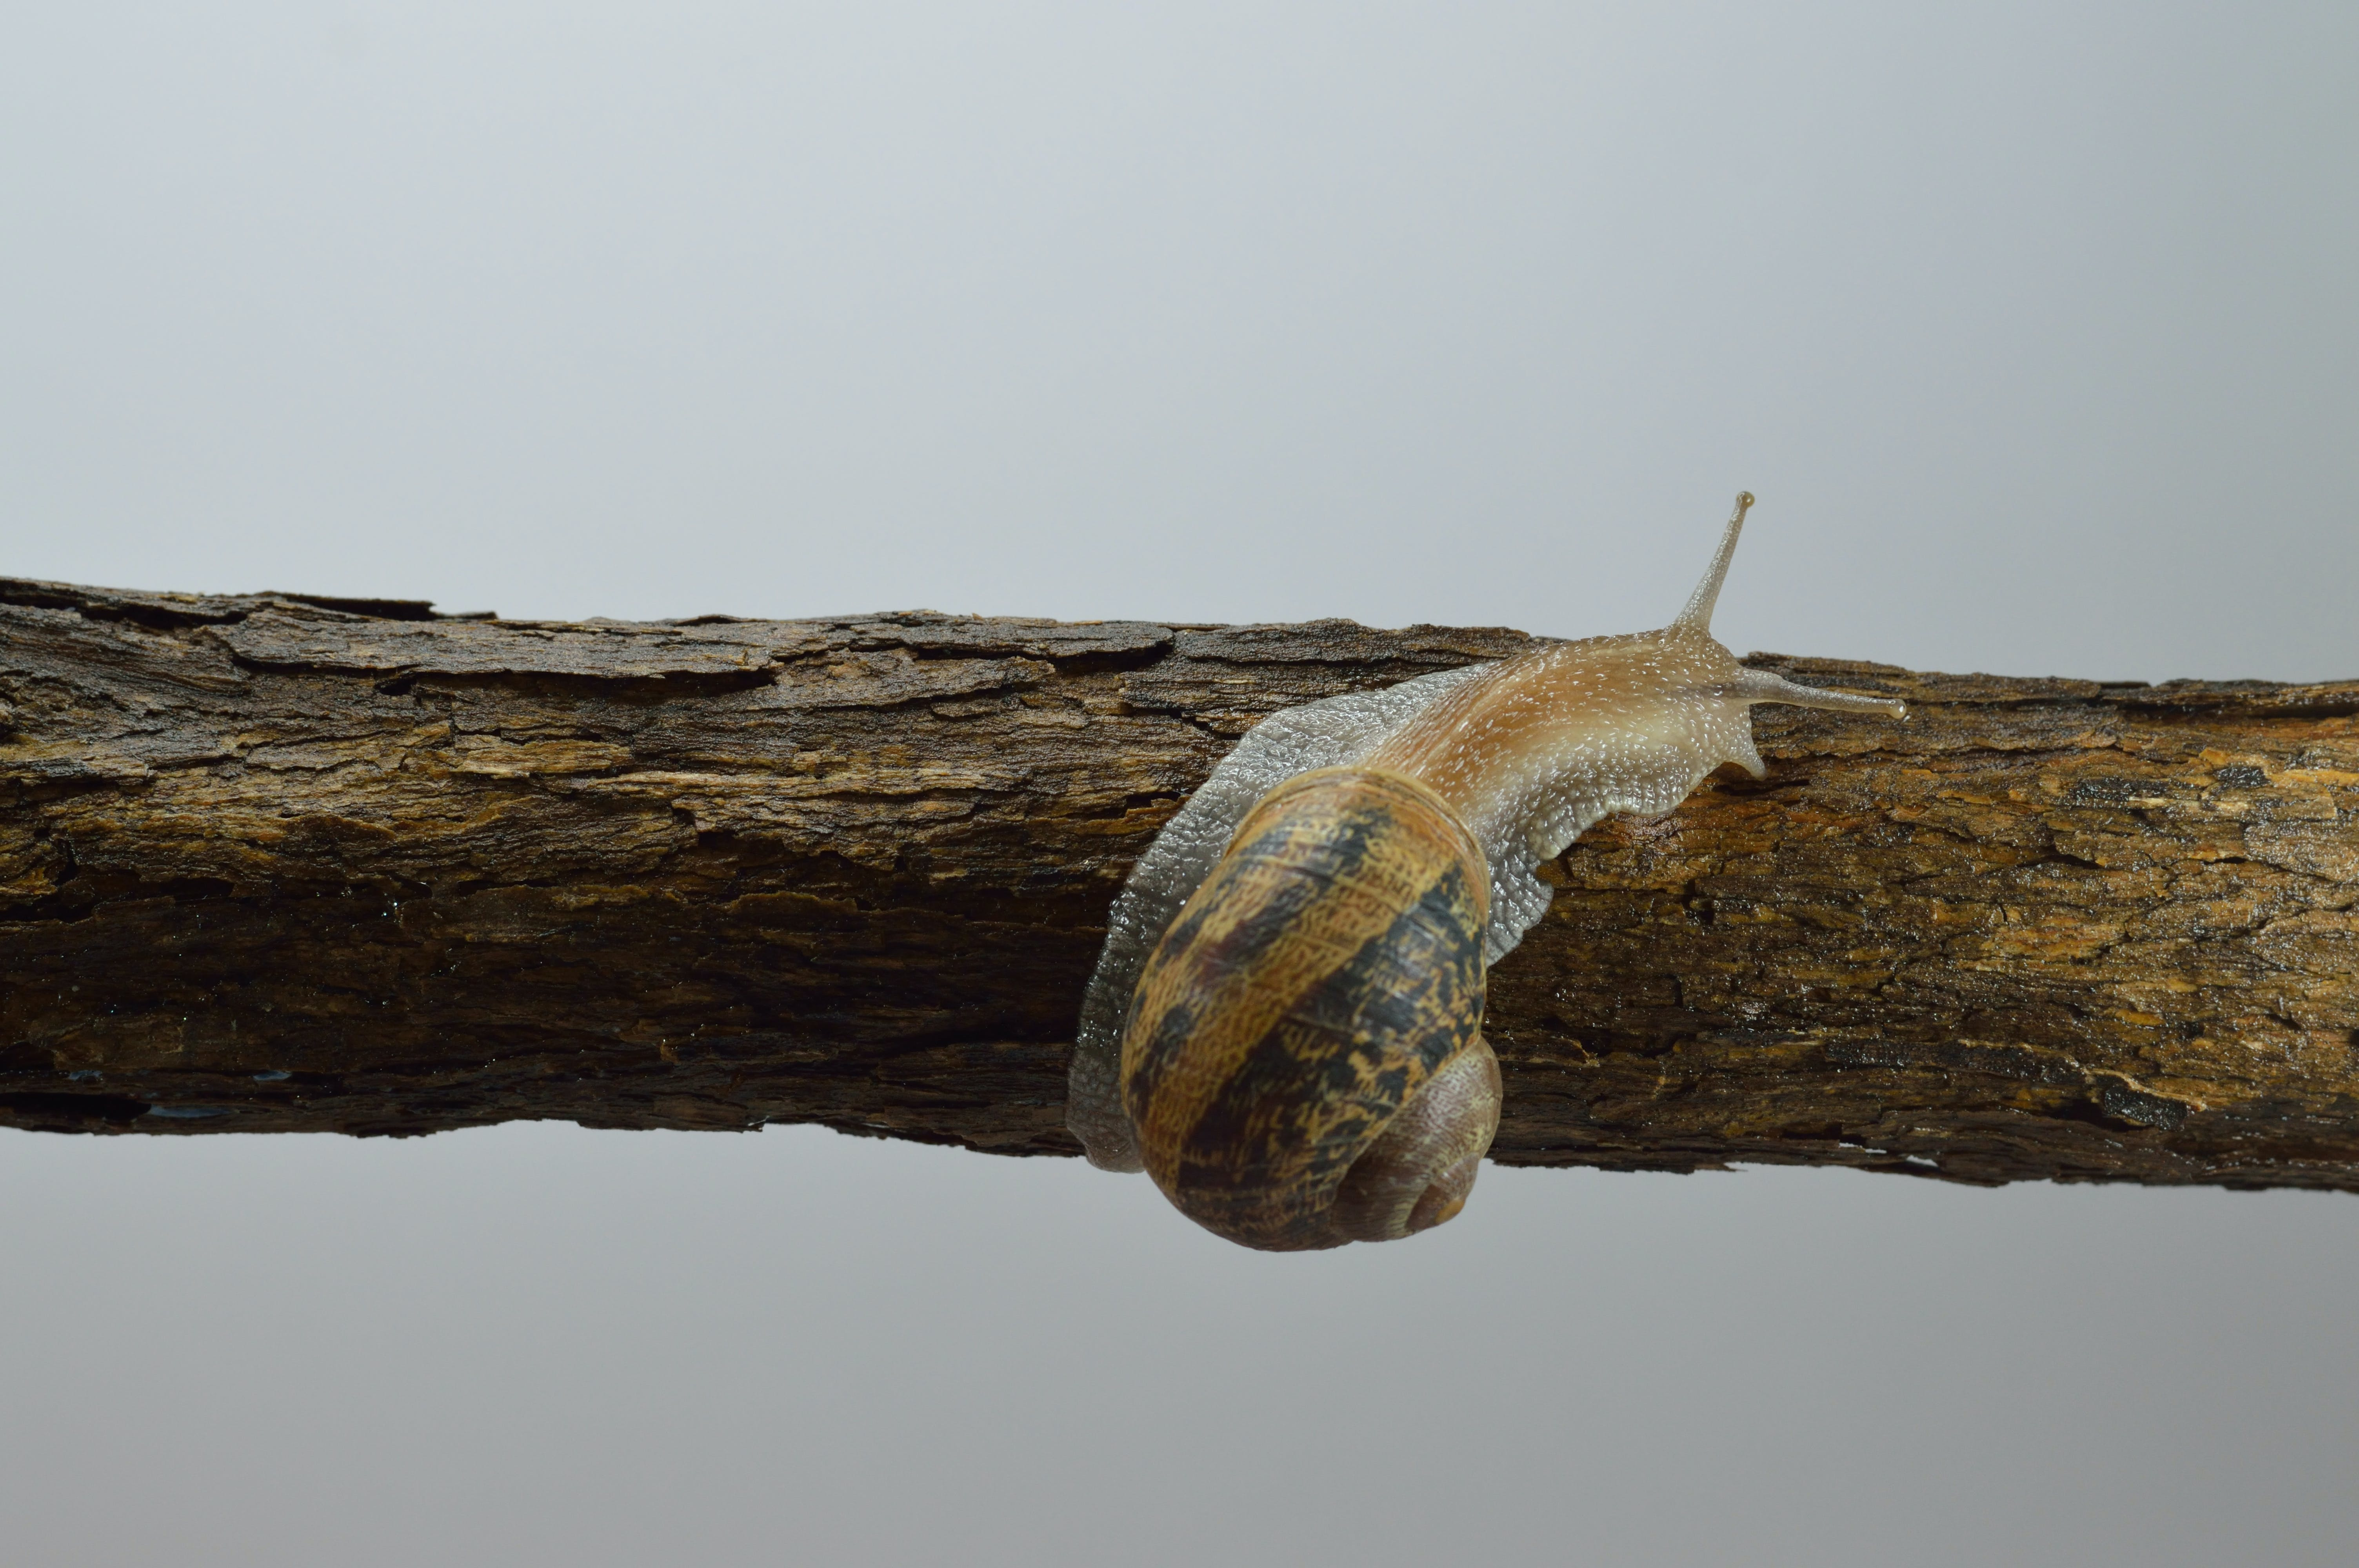 Brown and Gray Snail on Tree Branch